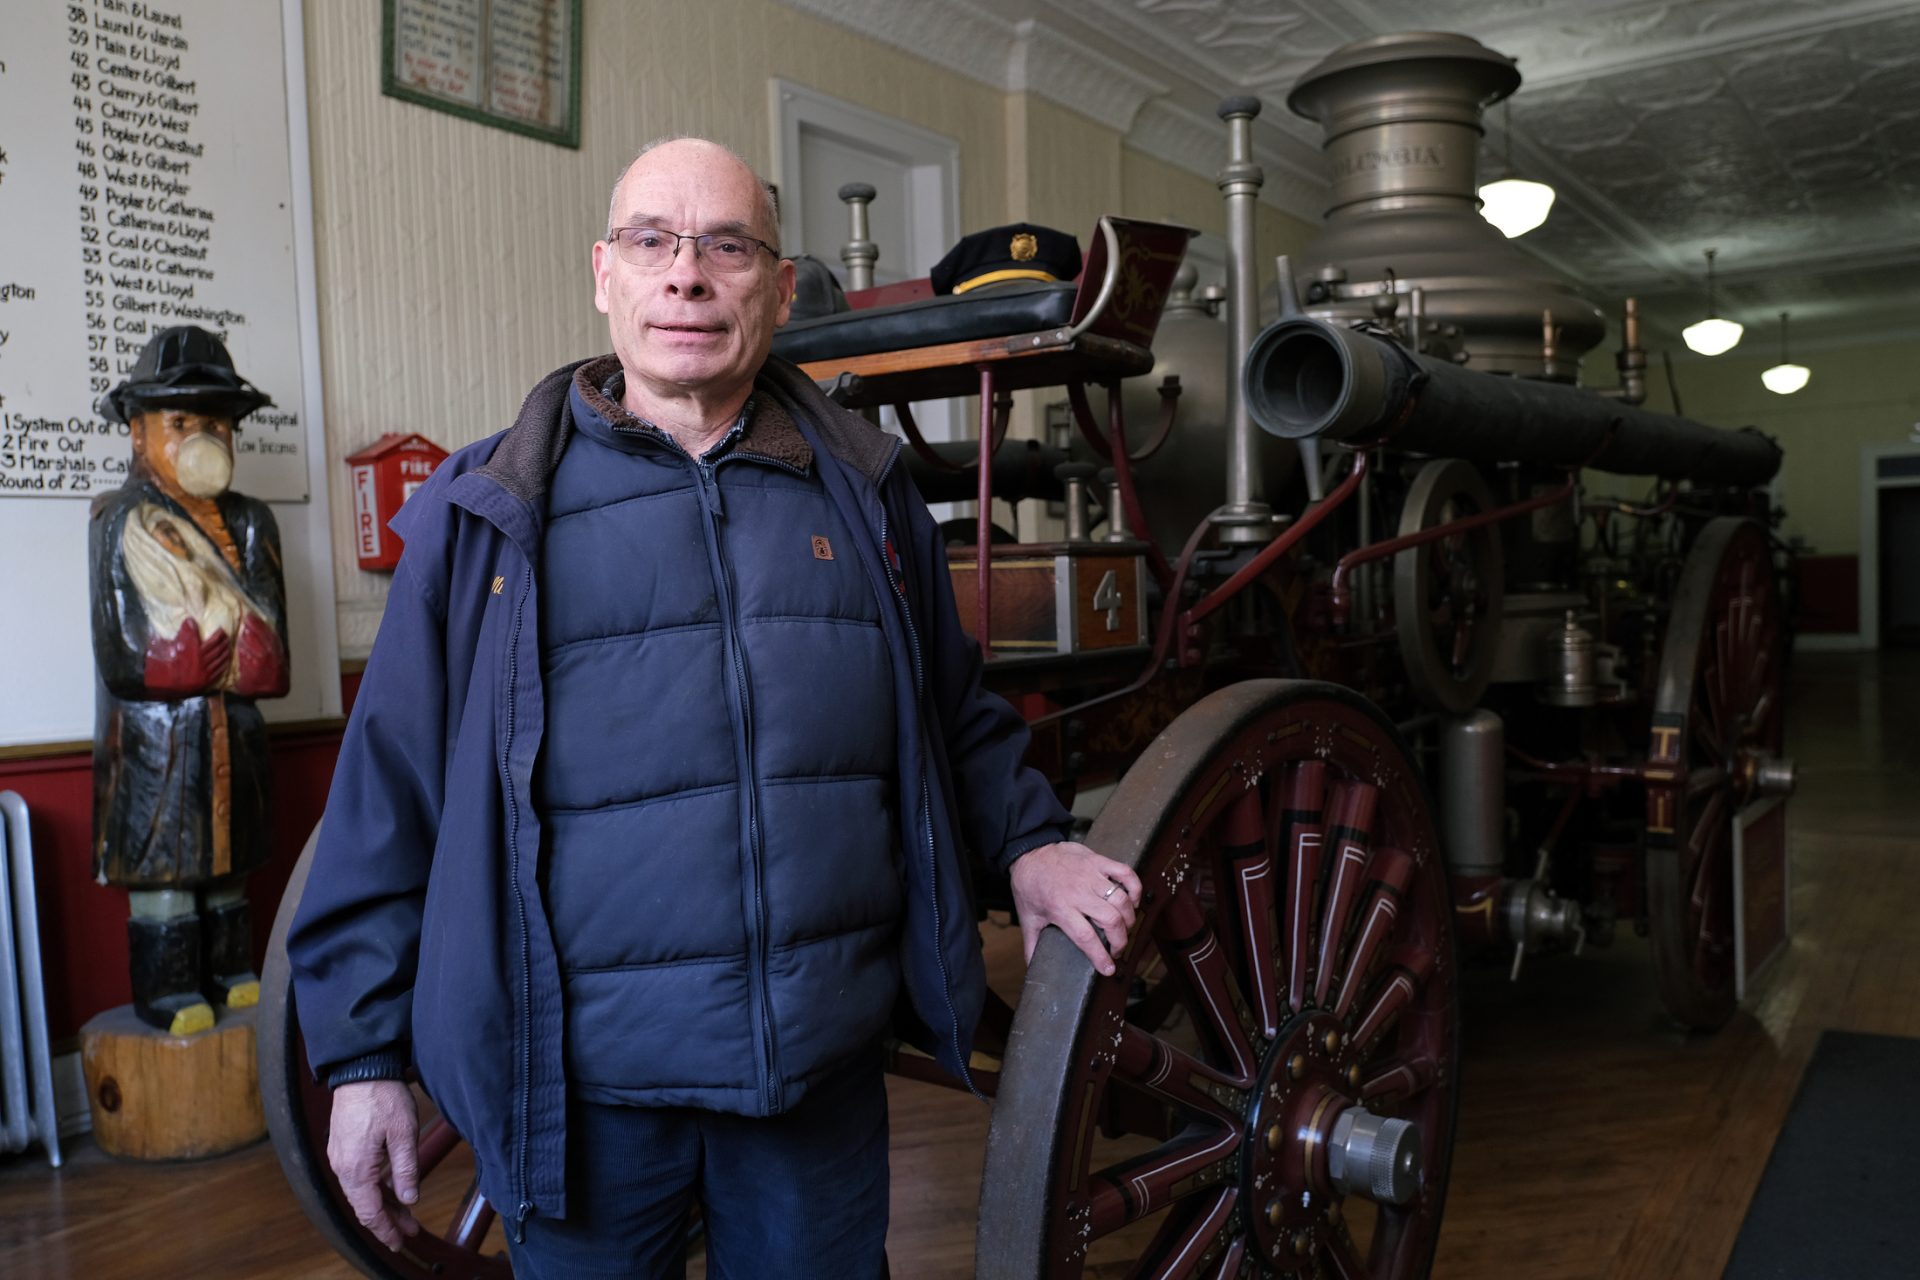 Veteran firefighter Mike Kitsock stands by a 1909 Ahrens Continental steam fire engine is displayed Jan. 16, 2020, at the Schuylkill Historical Fire Society in Shenandoah, Pennsylvania.